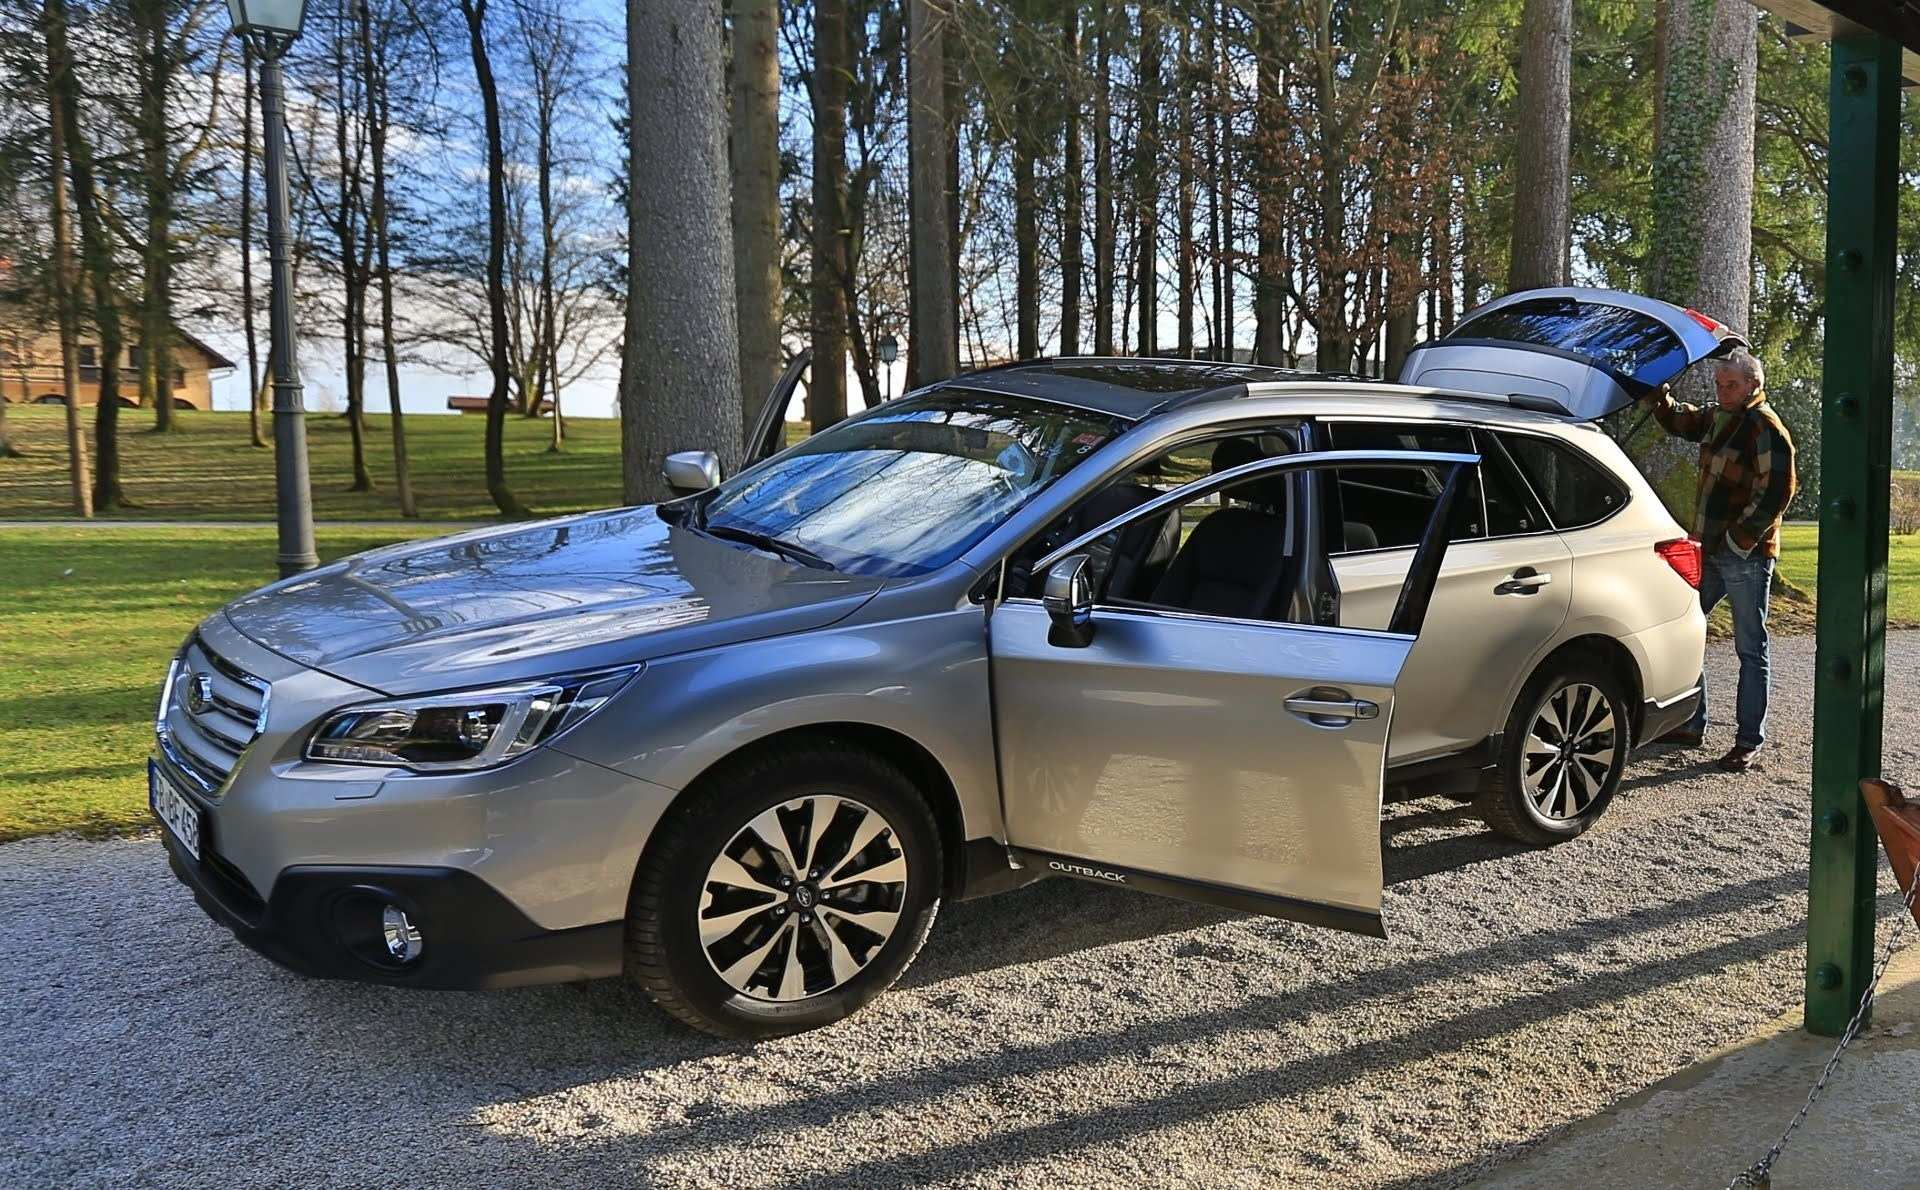 48 Best Review Subaru Outback 2020 Uk Images by Subaru Outback 2020 Uk